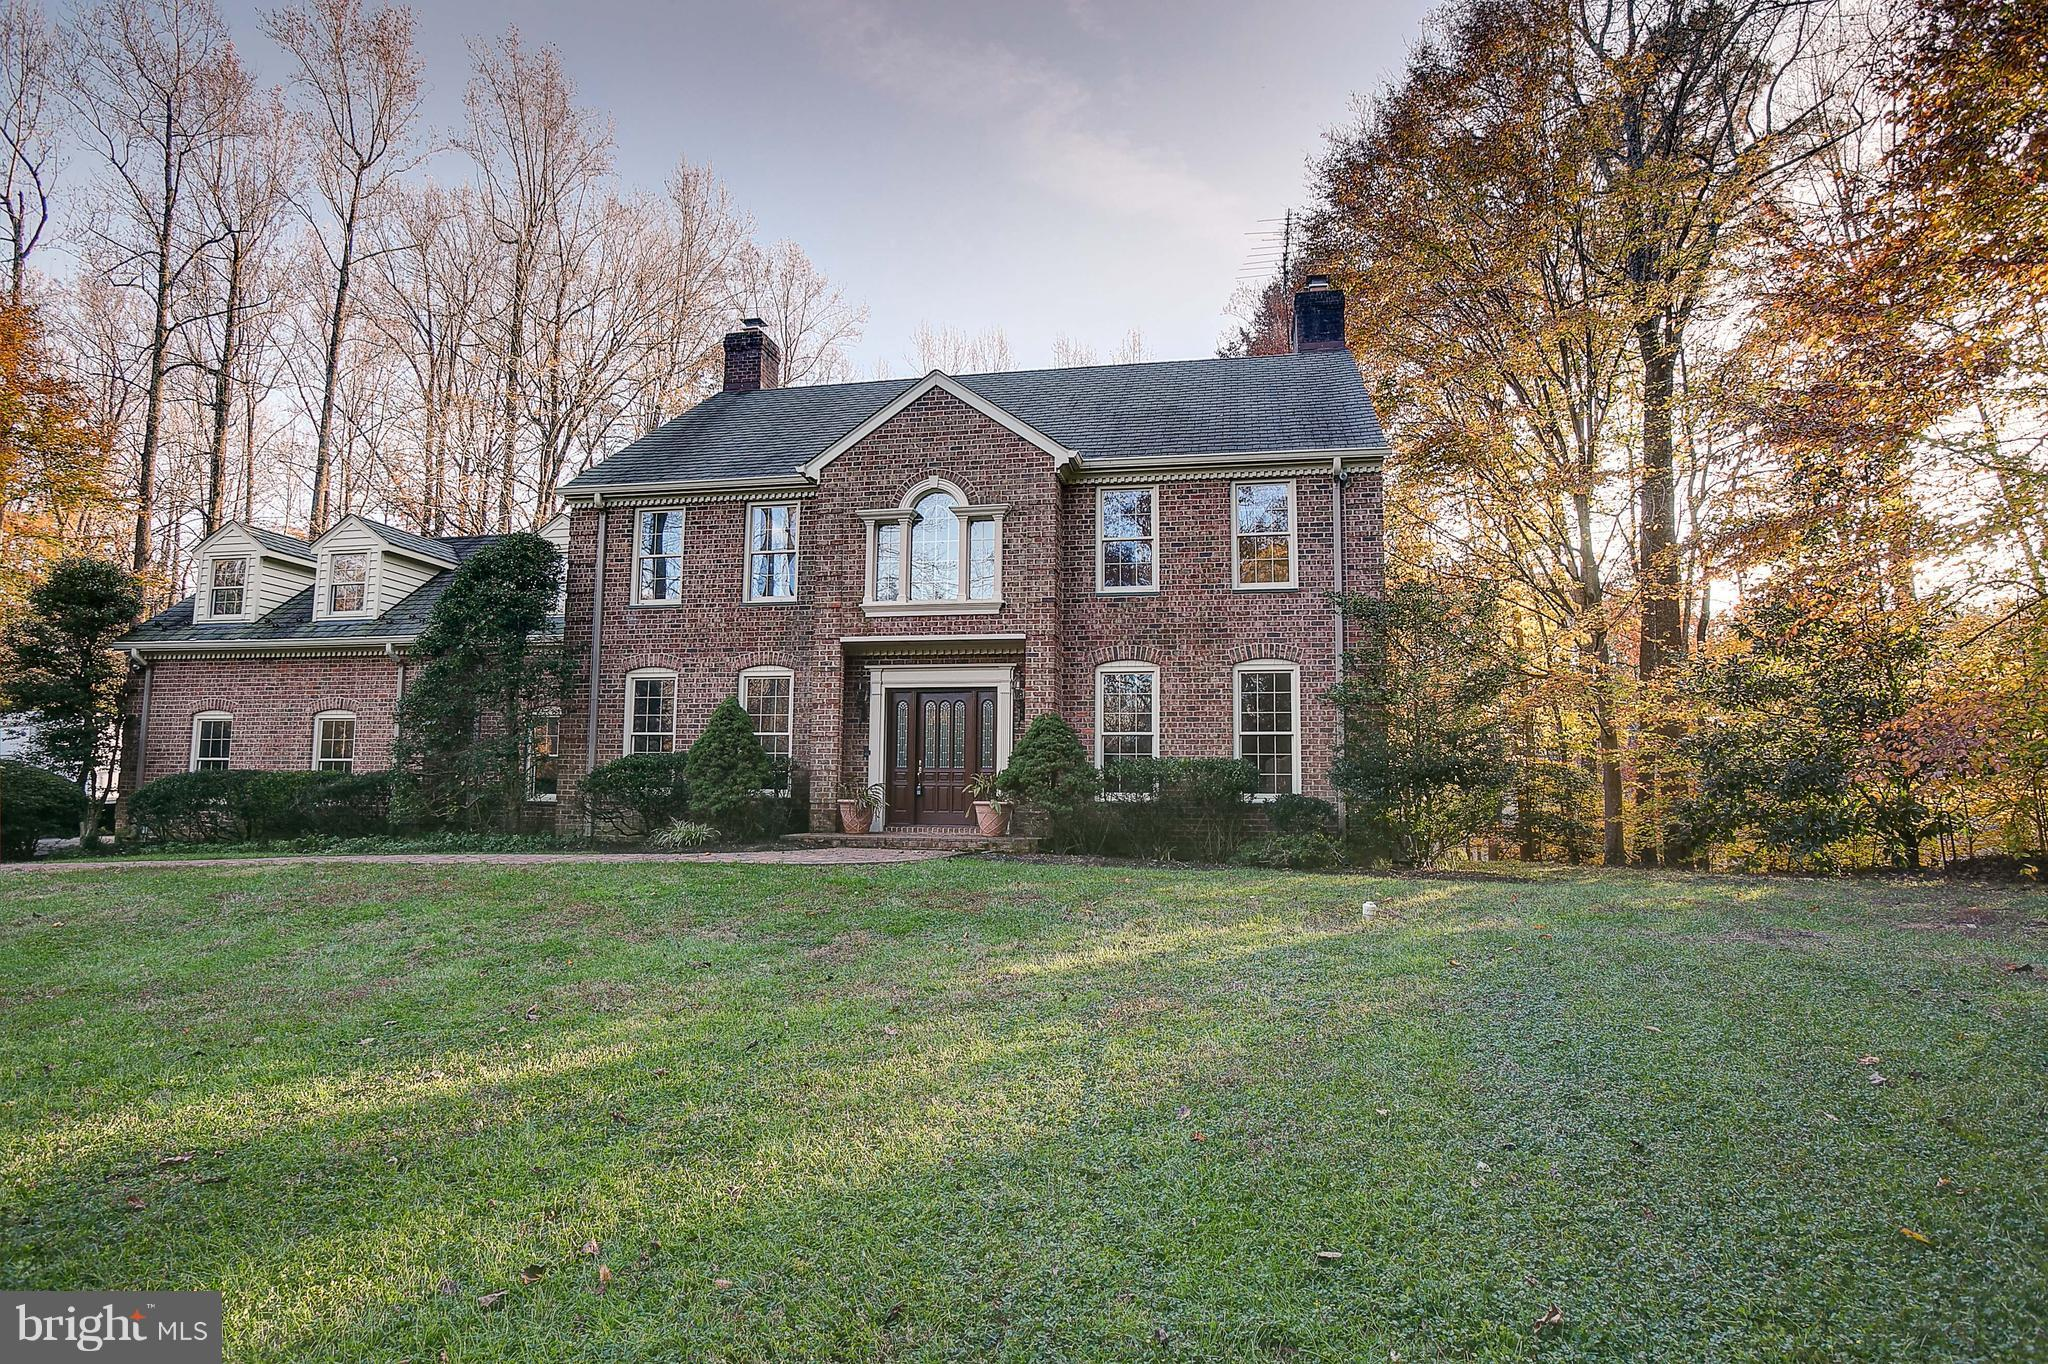 Stunning, Brick Colonial on 5 Acre Private Treed Lot in Equestrian Neighborhood. Featuring a Gourmet Chef's Kitchen w/2 JennAir Stoves, 2 Dishwashers, Recessed Lighting, Granite Counters, Plenty of Cabinet and Counter Space, Bar, & Wood Floors. Separate Dining Room and Living Room, Each w/Their Own Fireplace. Fabulous Yard w/In Ground Pool, Huge Patio, Tennis/Basketball Court. Entertainers Delight